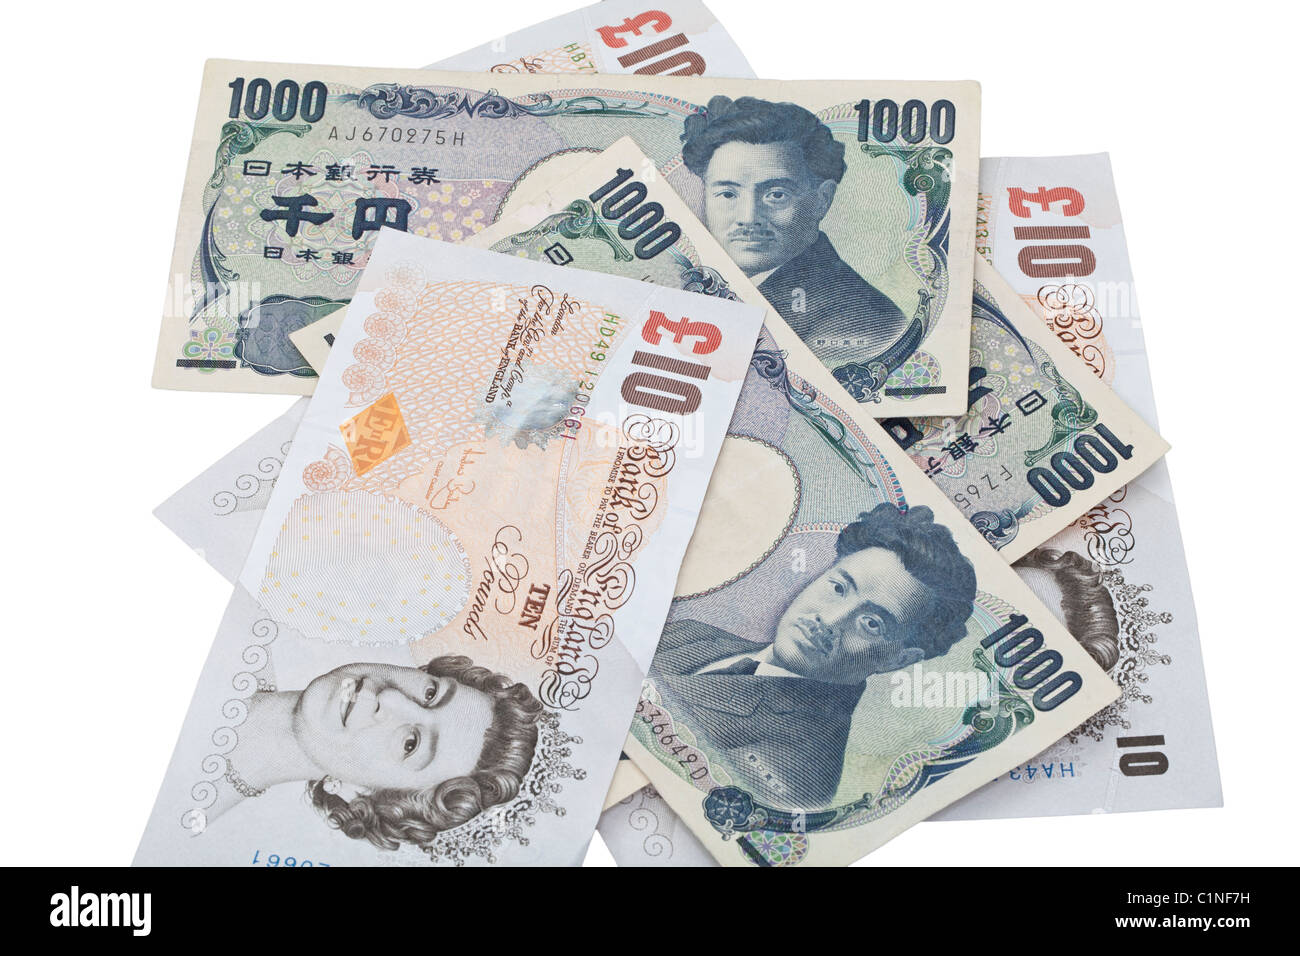 Japanese Yen and British banknotes against a white background - Stock Image